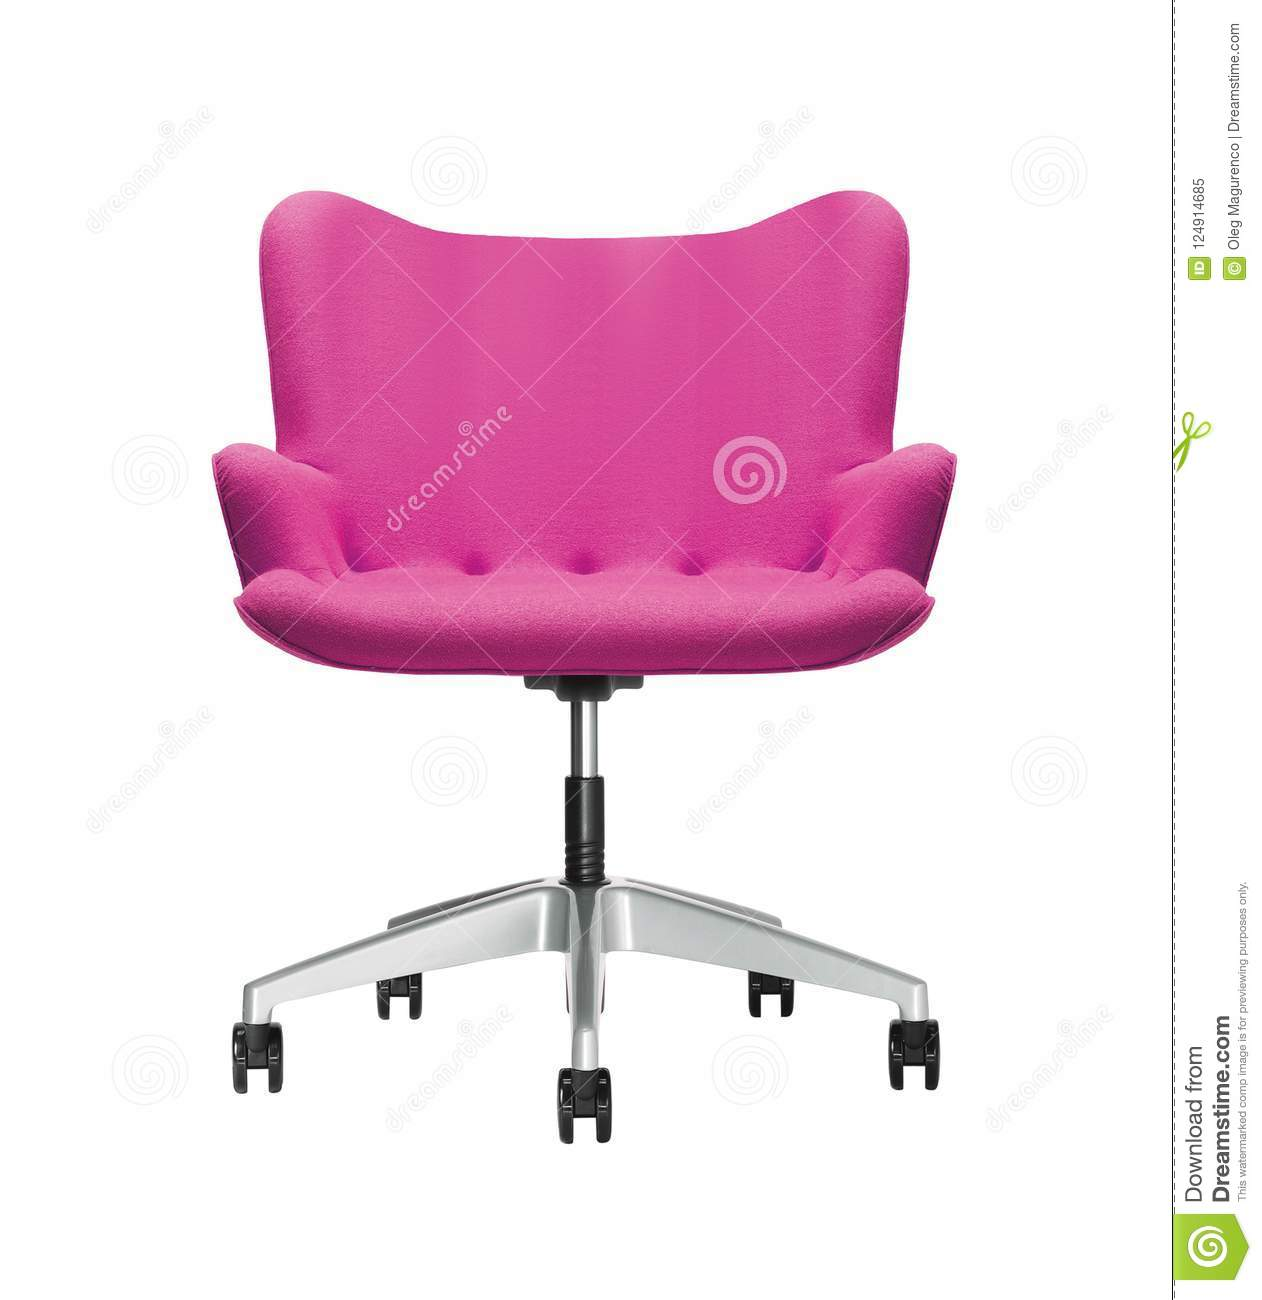 Pink Office Chairs The Office Chair From Pink Leather Isolated Stock Image Image Of